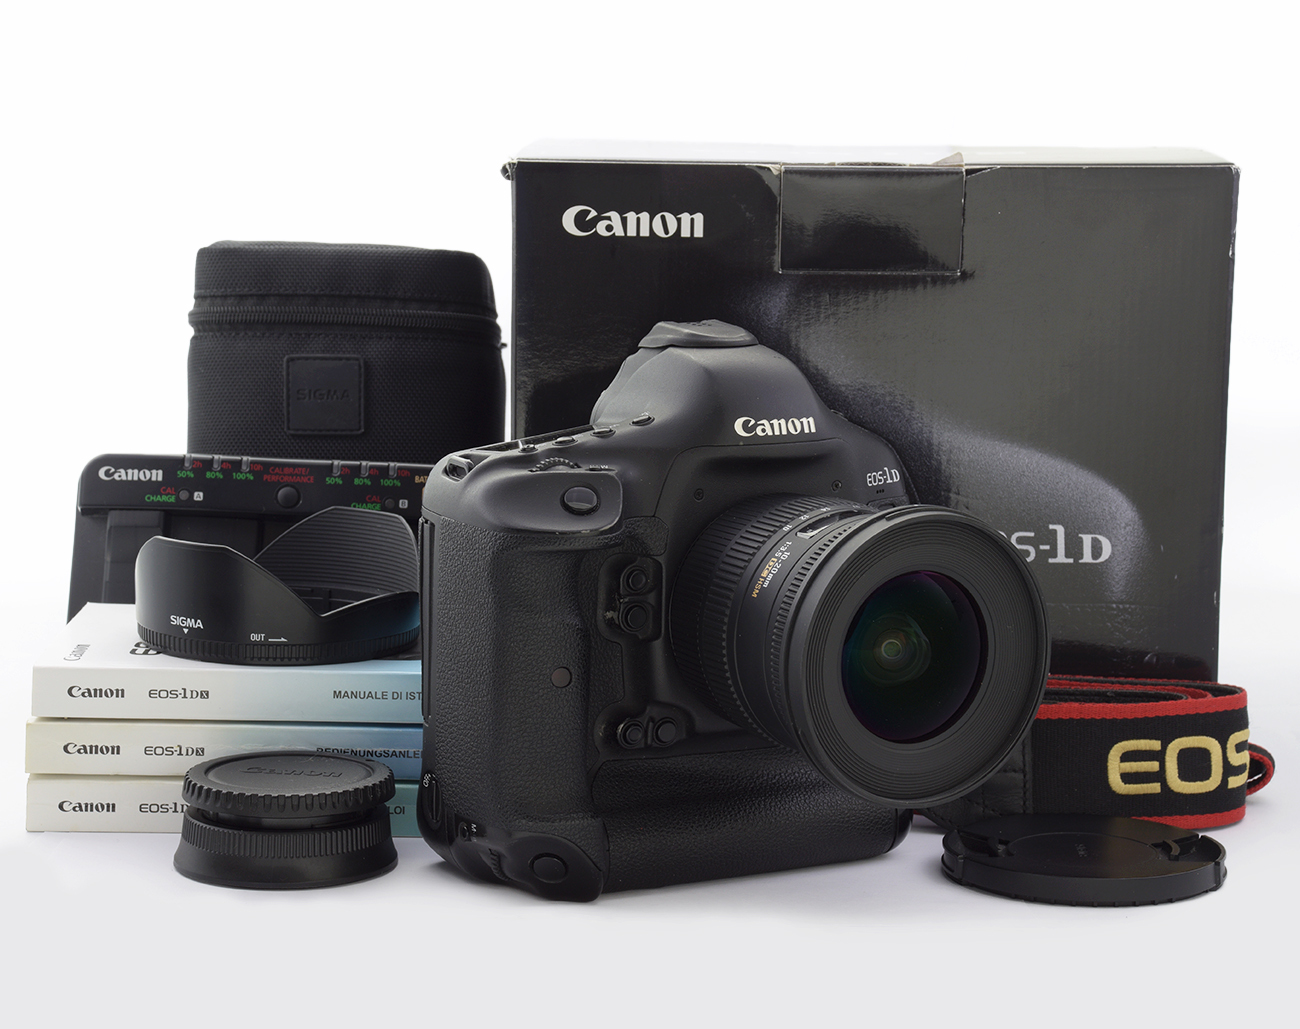 Canon-EOS-1D-X-18-1MP-Digital-SLR-Camera-with-Sigma-EX-3-5-10-20mm-DC-HSM